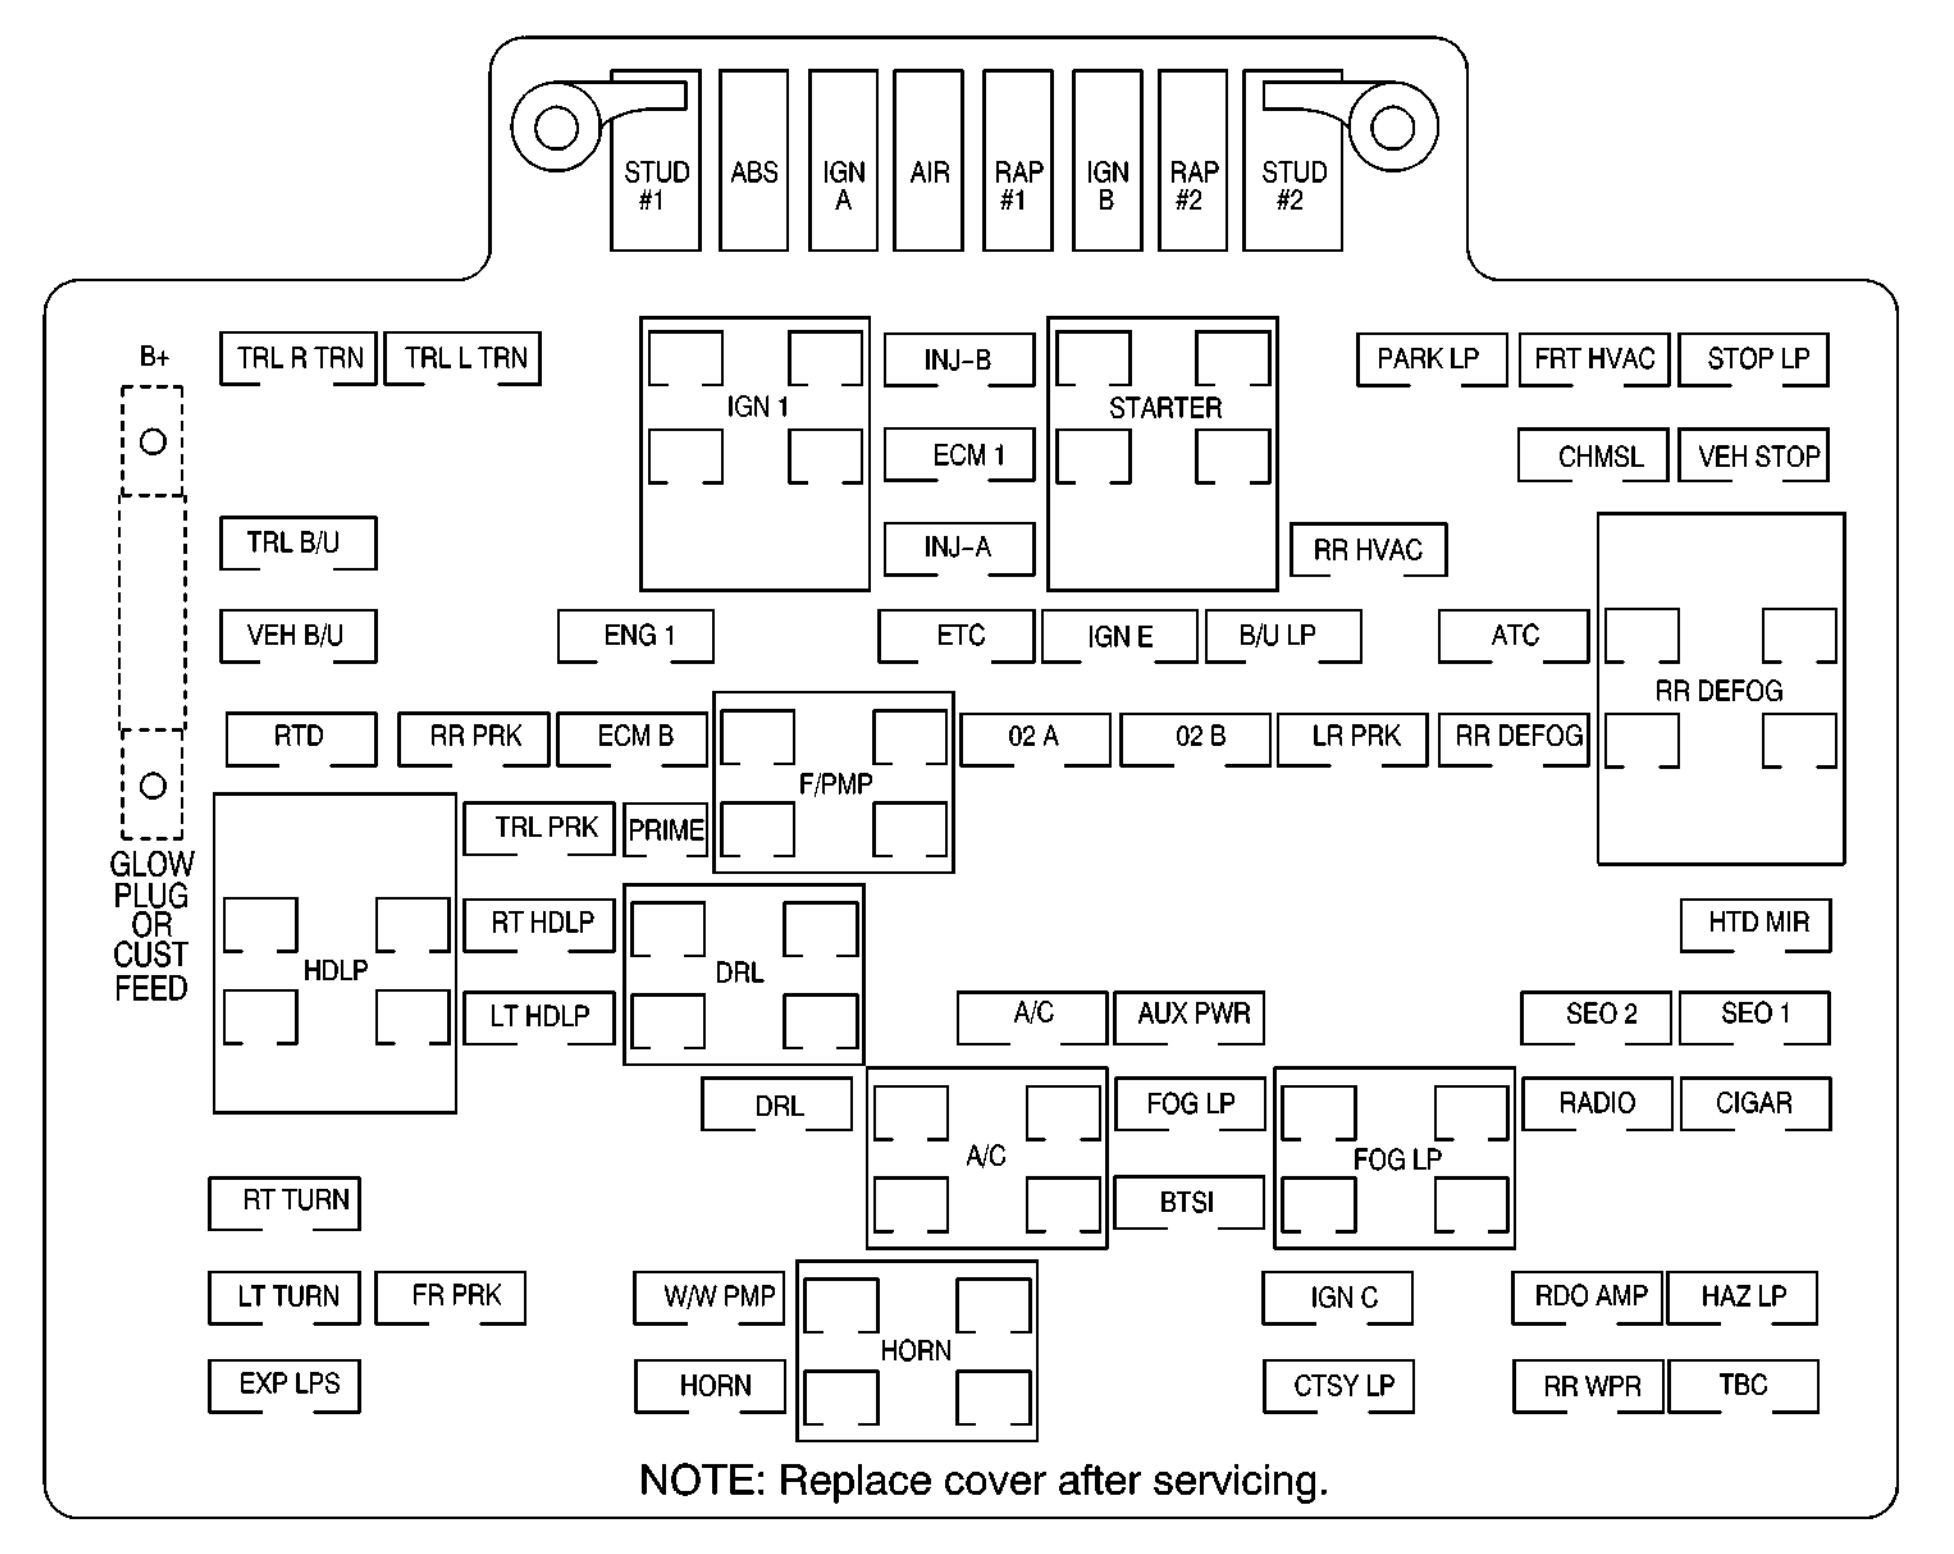 Chevrolet Tahoe 2002 Fuse Box Diagram on 2001 silverado transmission